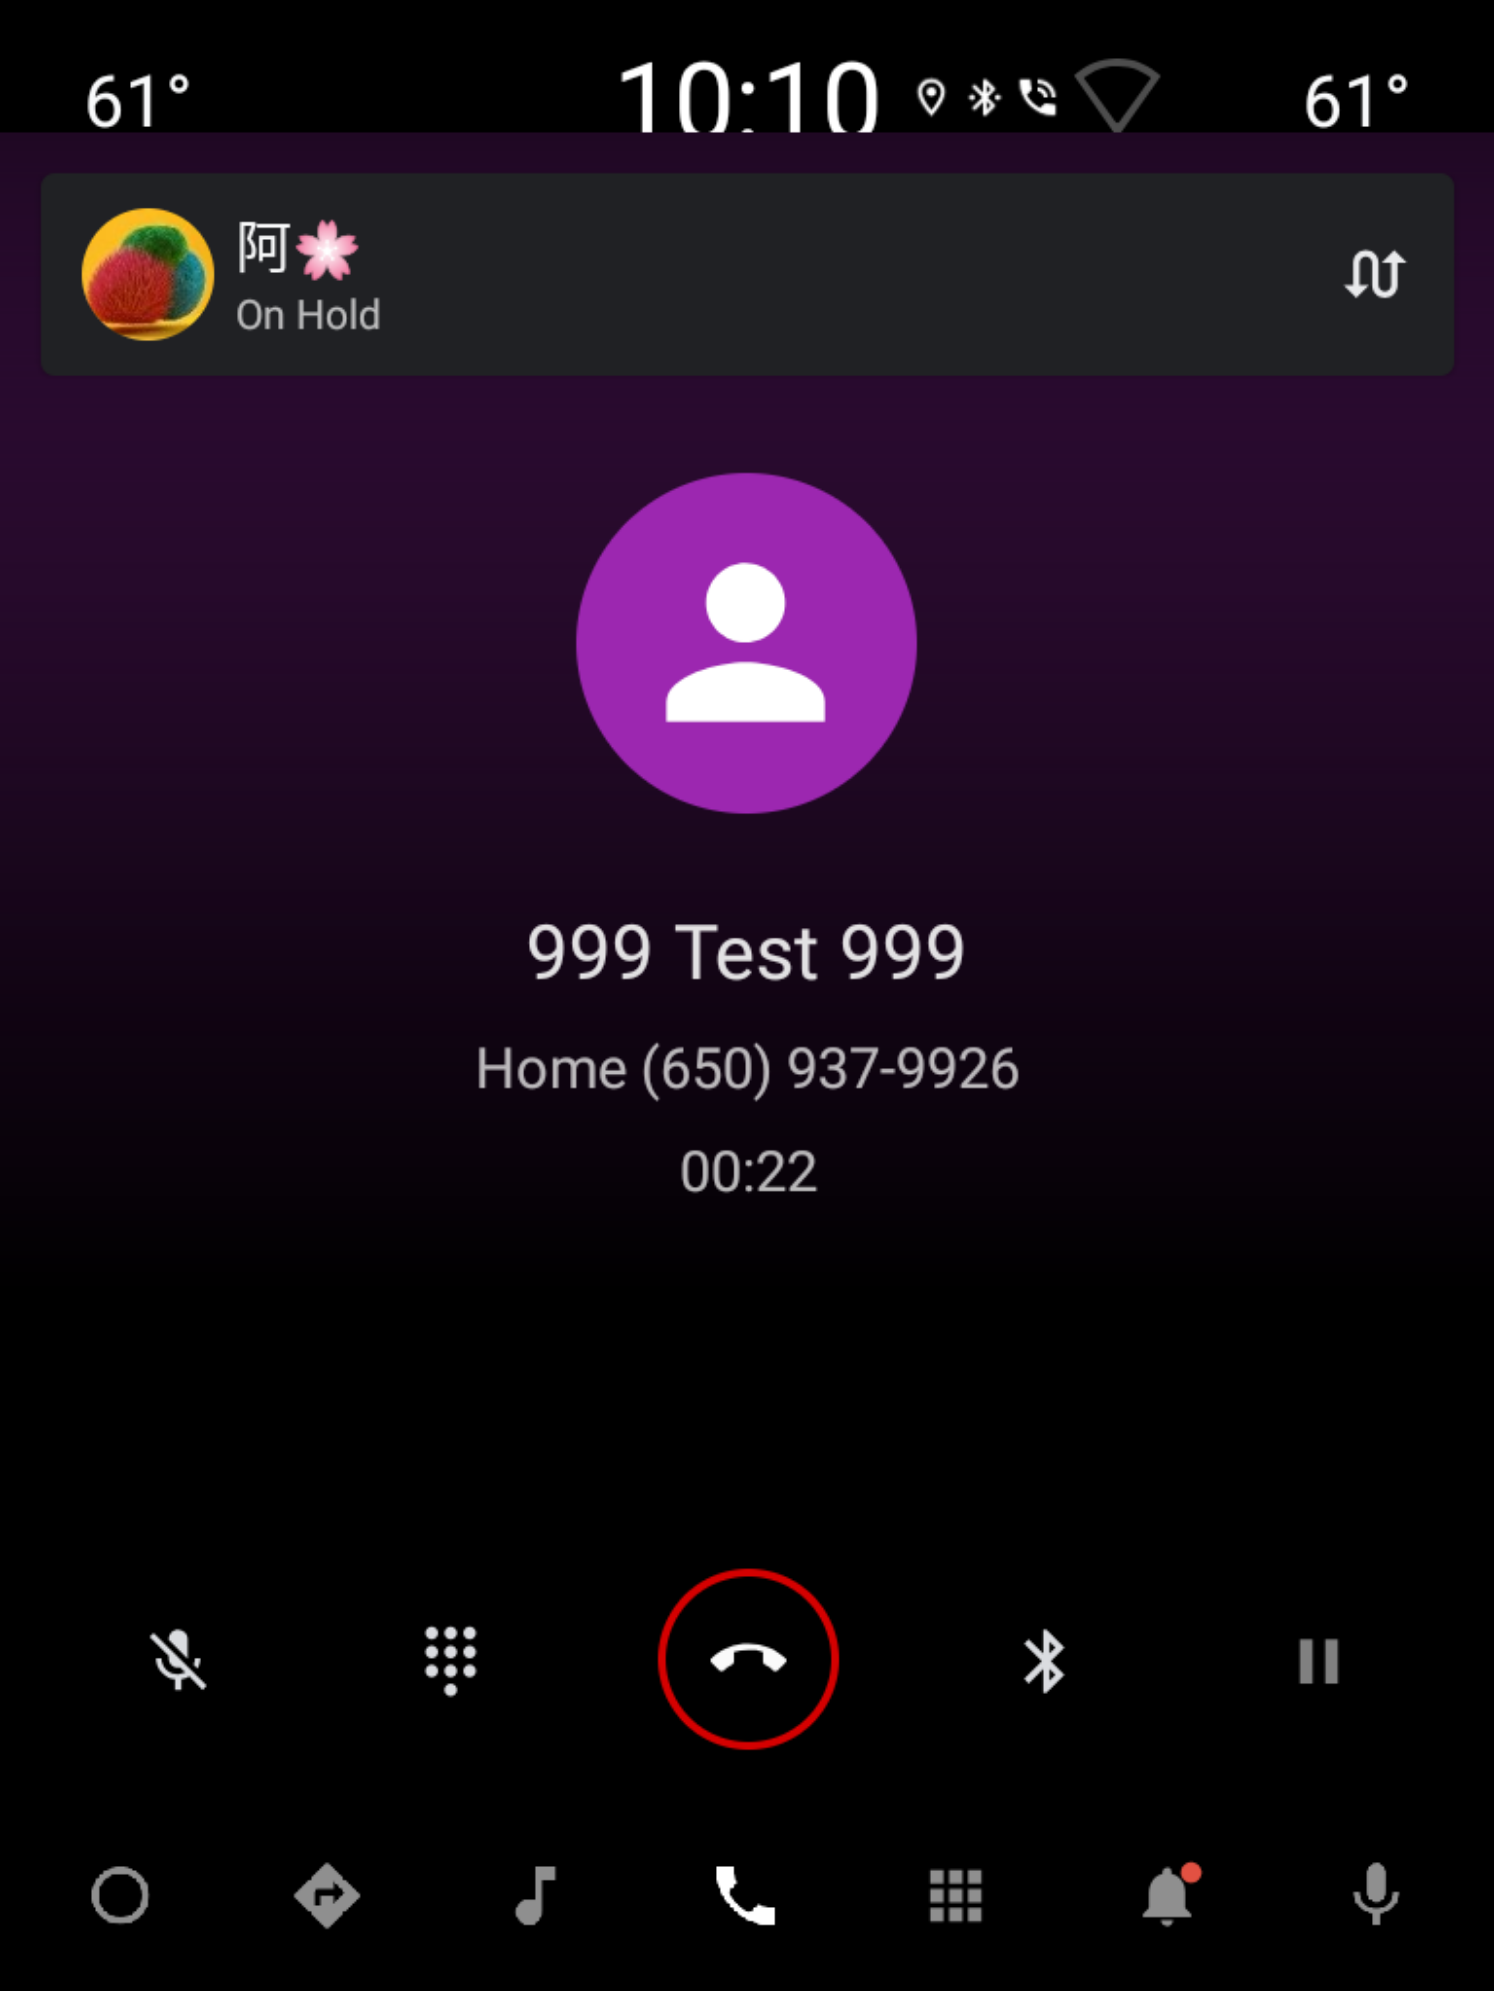 Ongoing call page in portrait mode